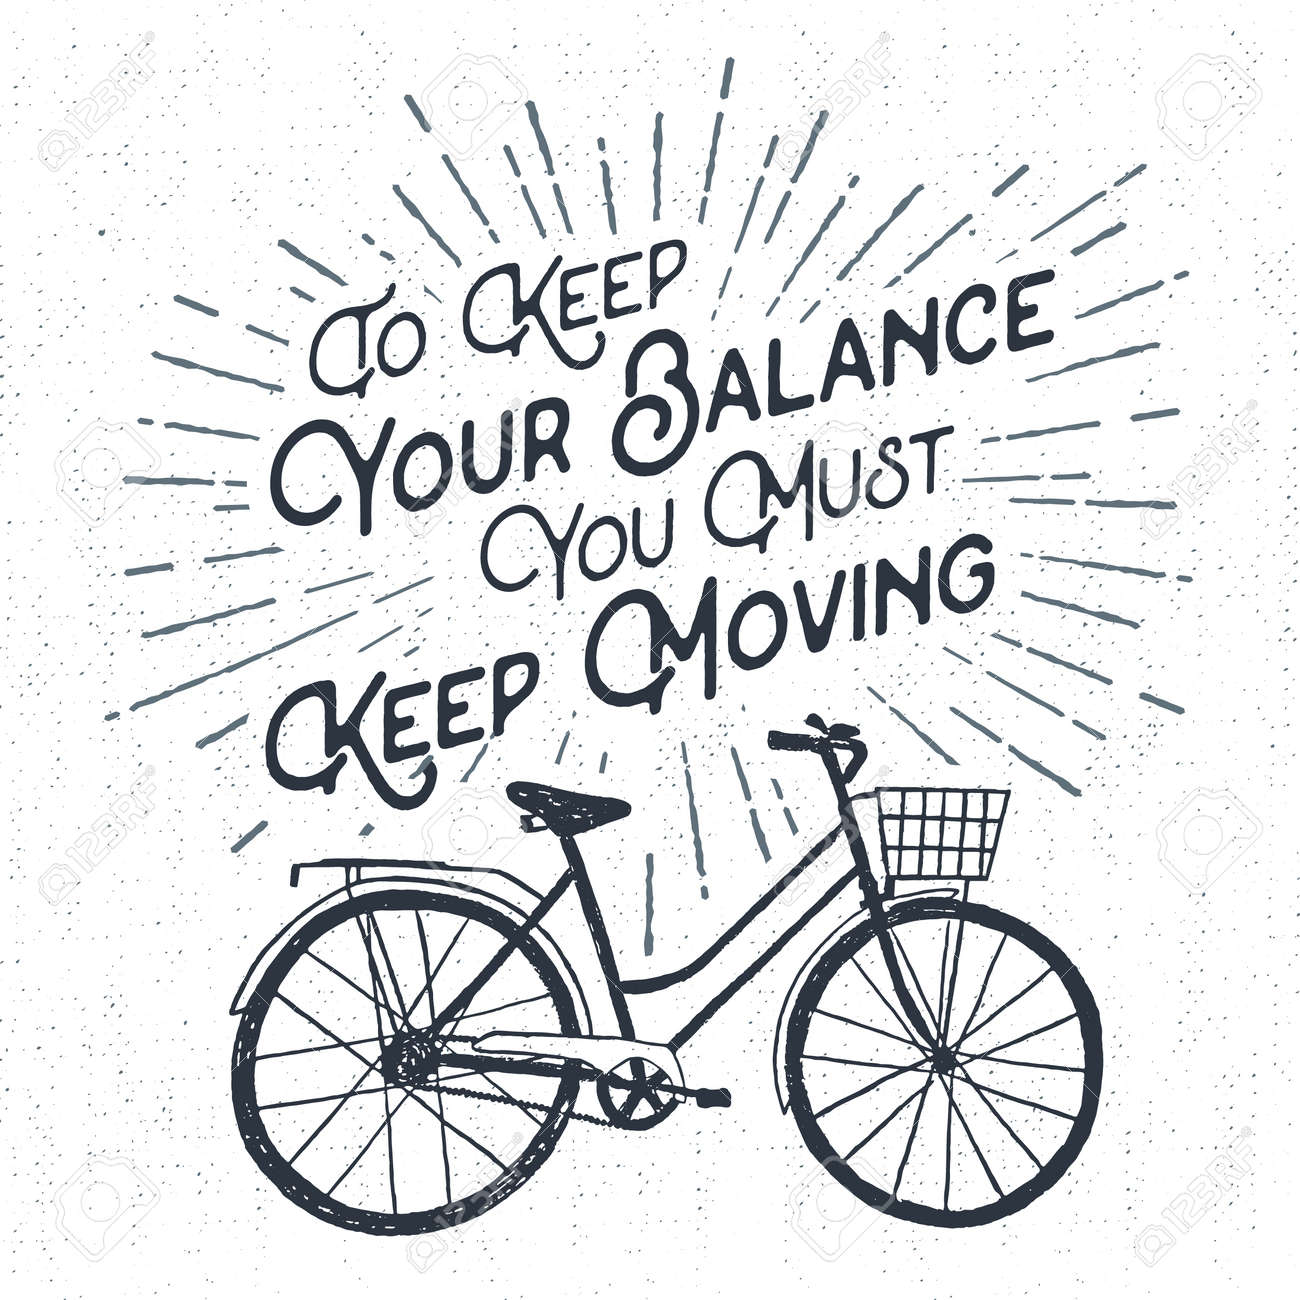 """Hand drawn textured vintage label, retro badge with bicycle vector illustration and """"To keep your balance you must keep moving"""" lettering. - 53285577"""